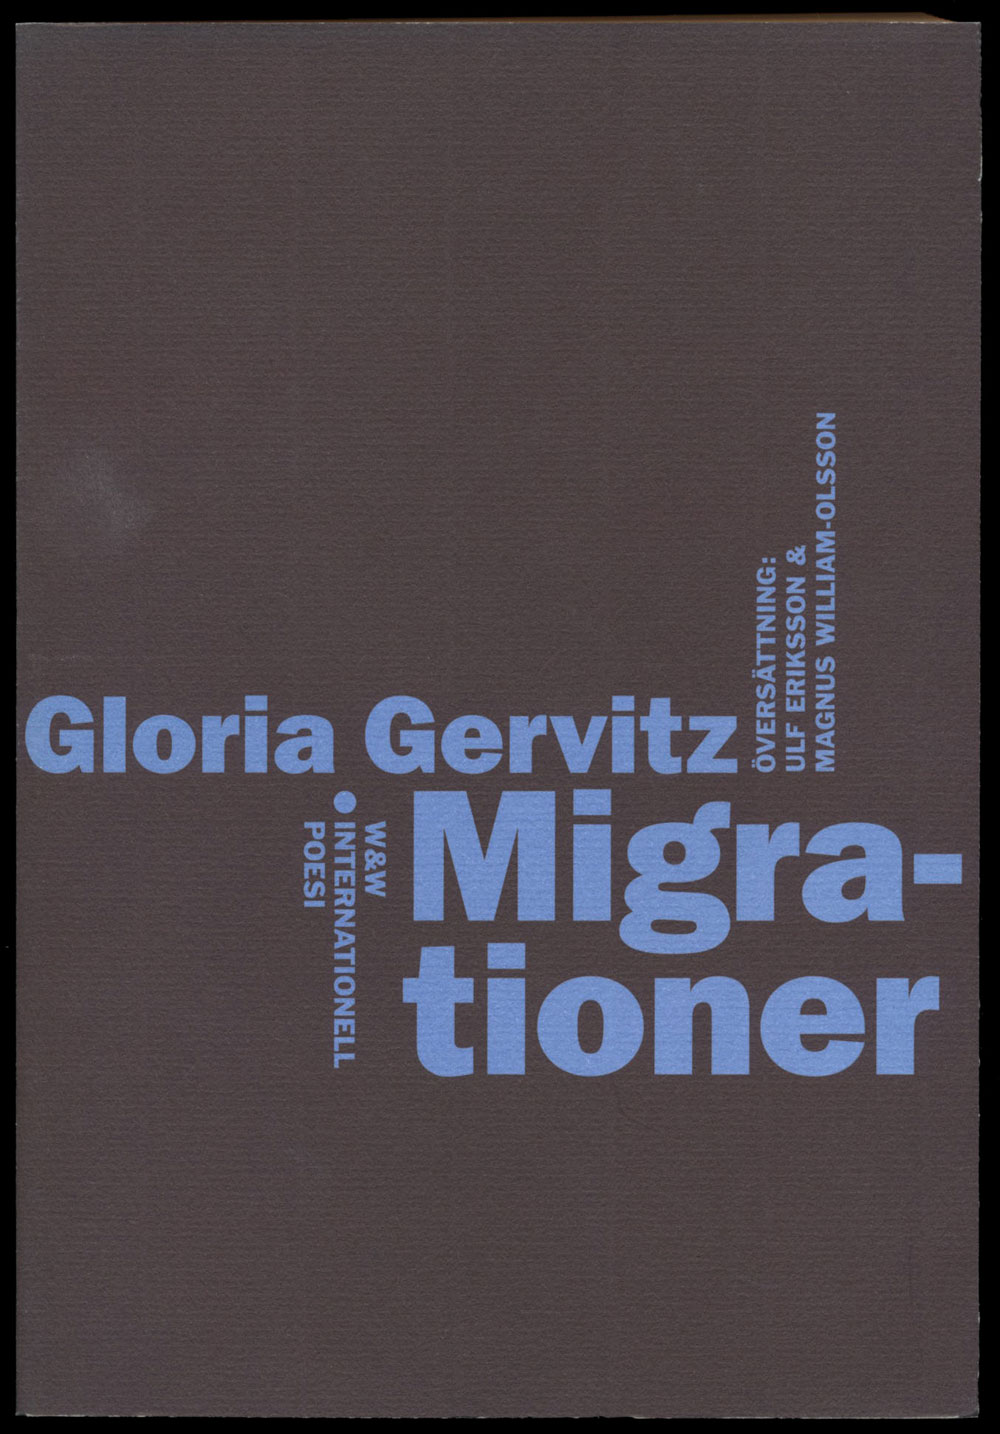 Gloria Gervitz Migrationer Wahlström & Widstrands serie med internationell poesi